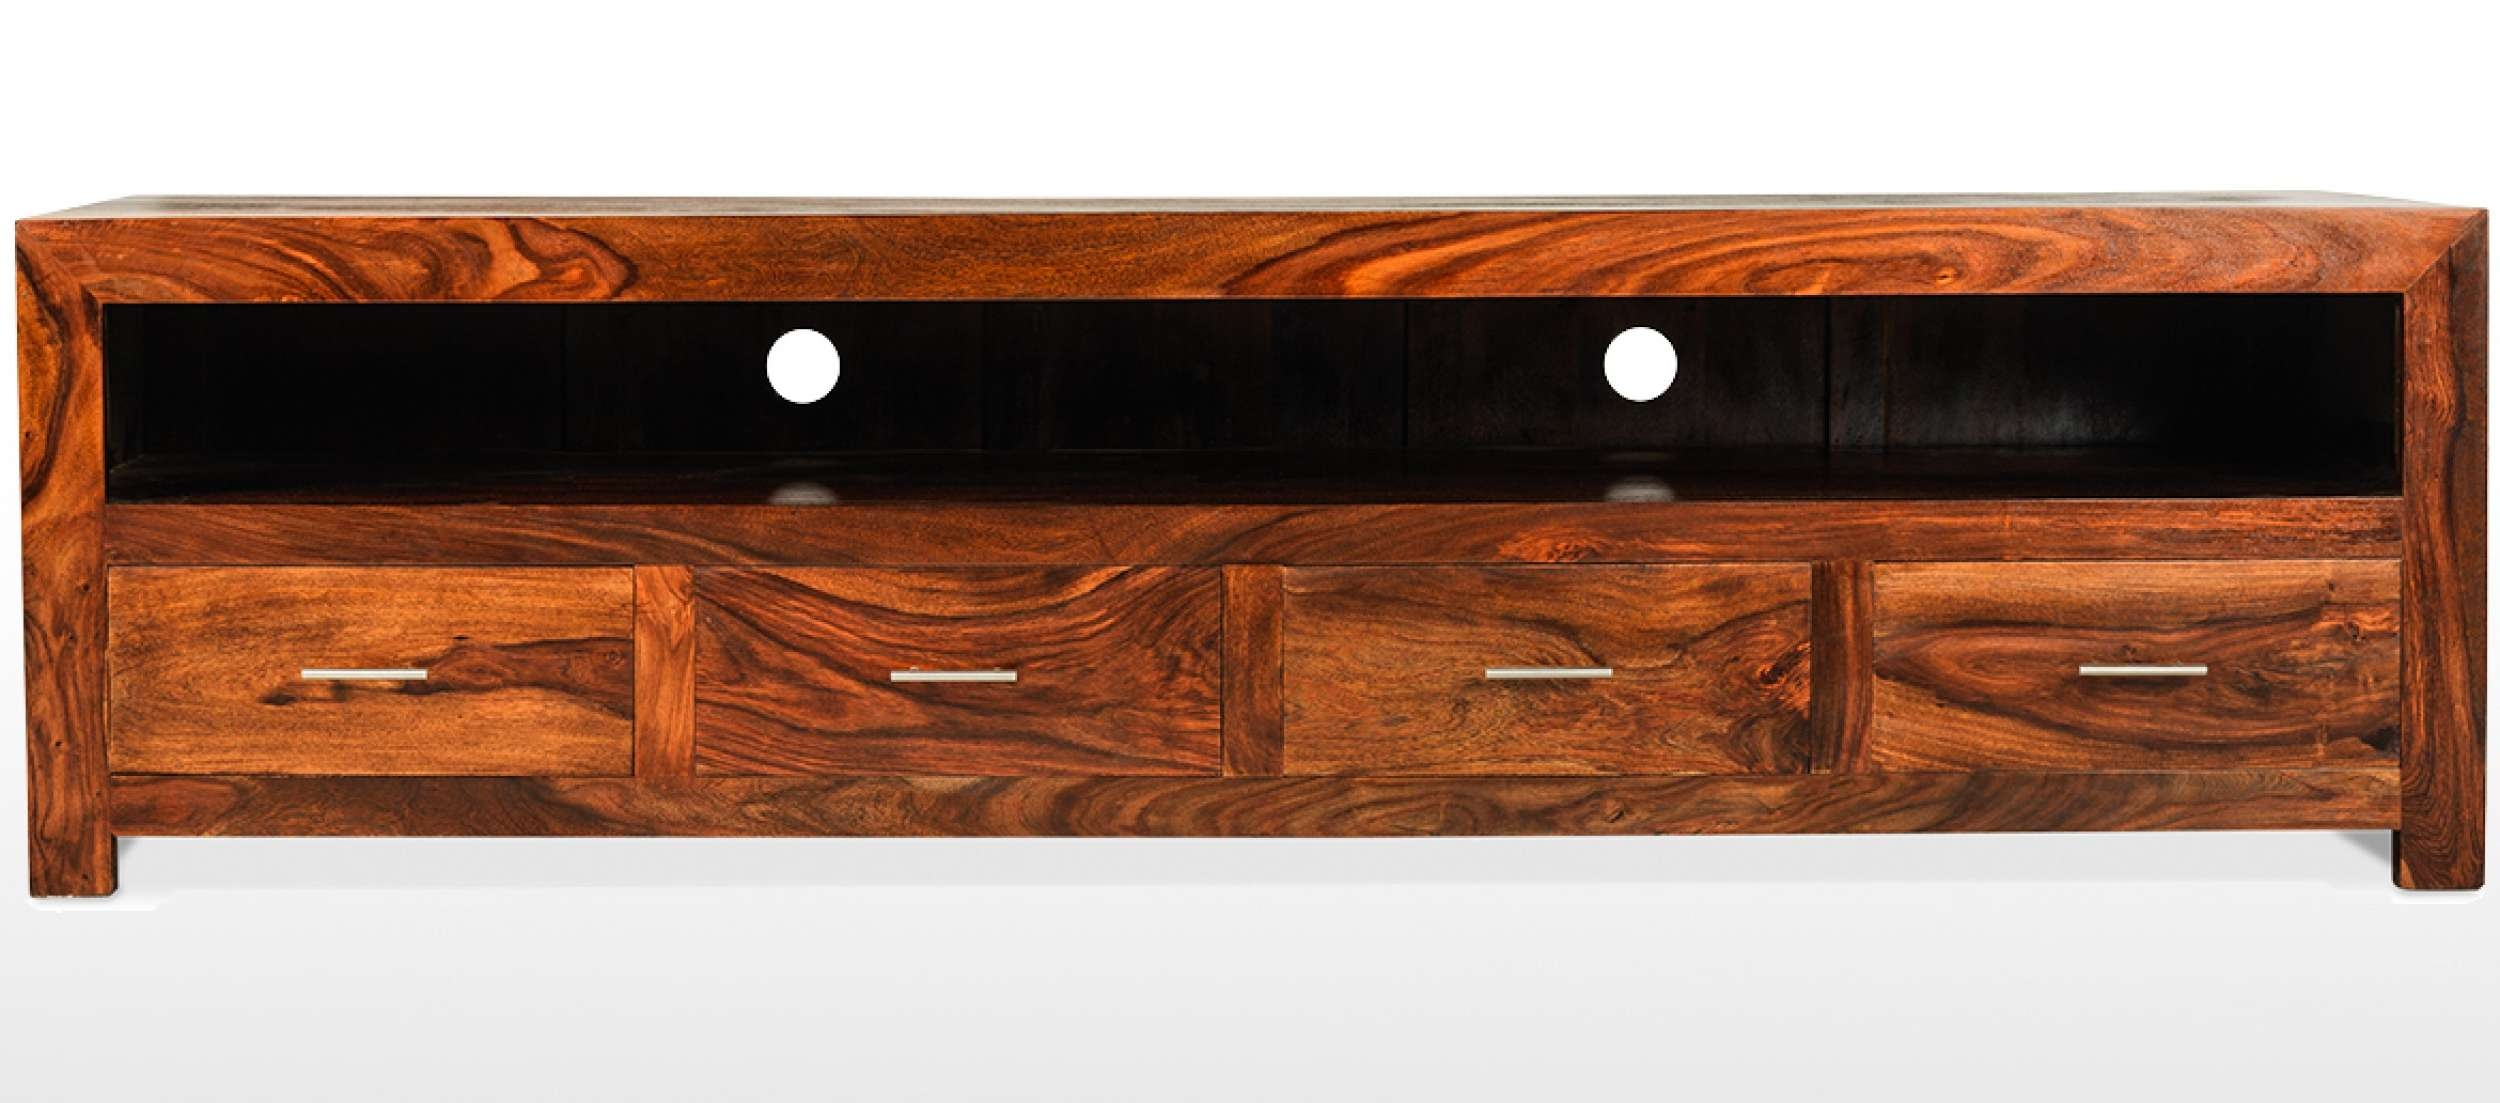 Cube Sheesham Long Plasma Tv Cabinet | Quercus Living For Wooden Tv Cabinets (View 8 of 20)